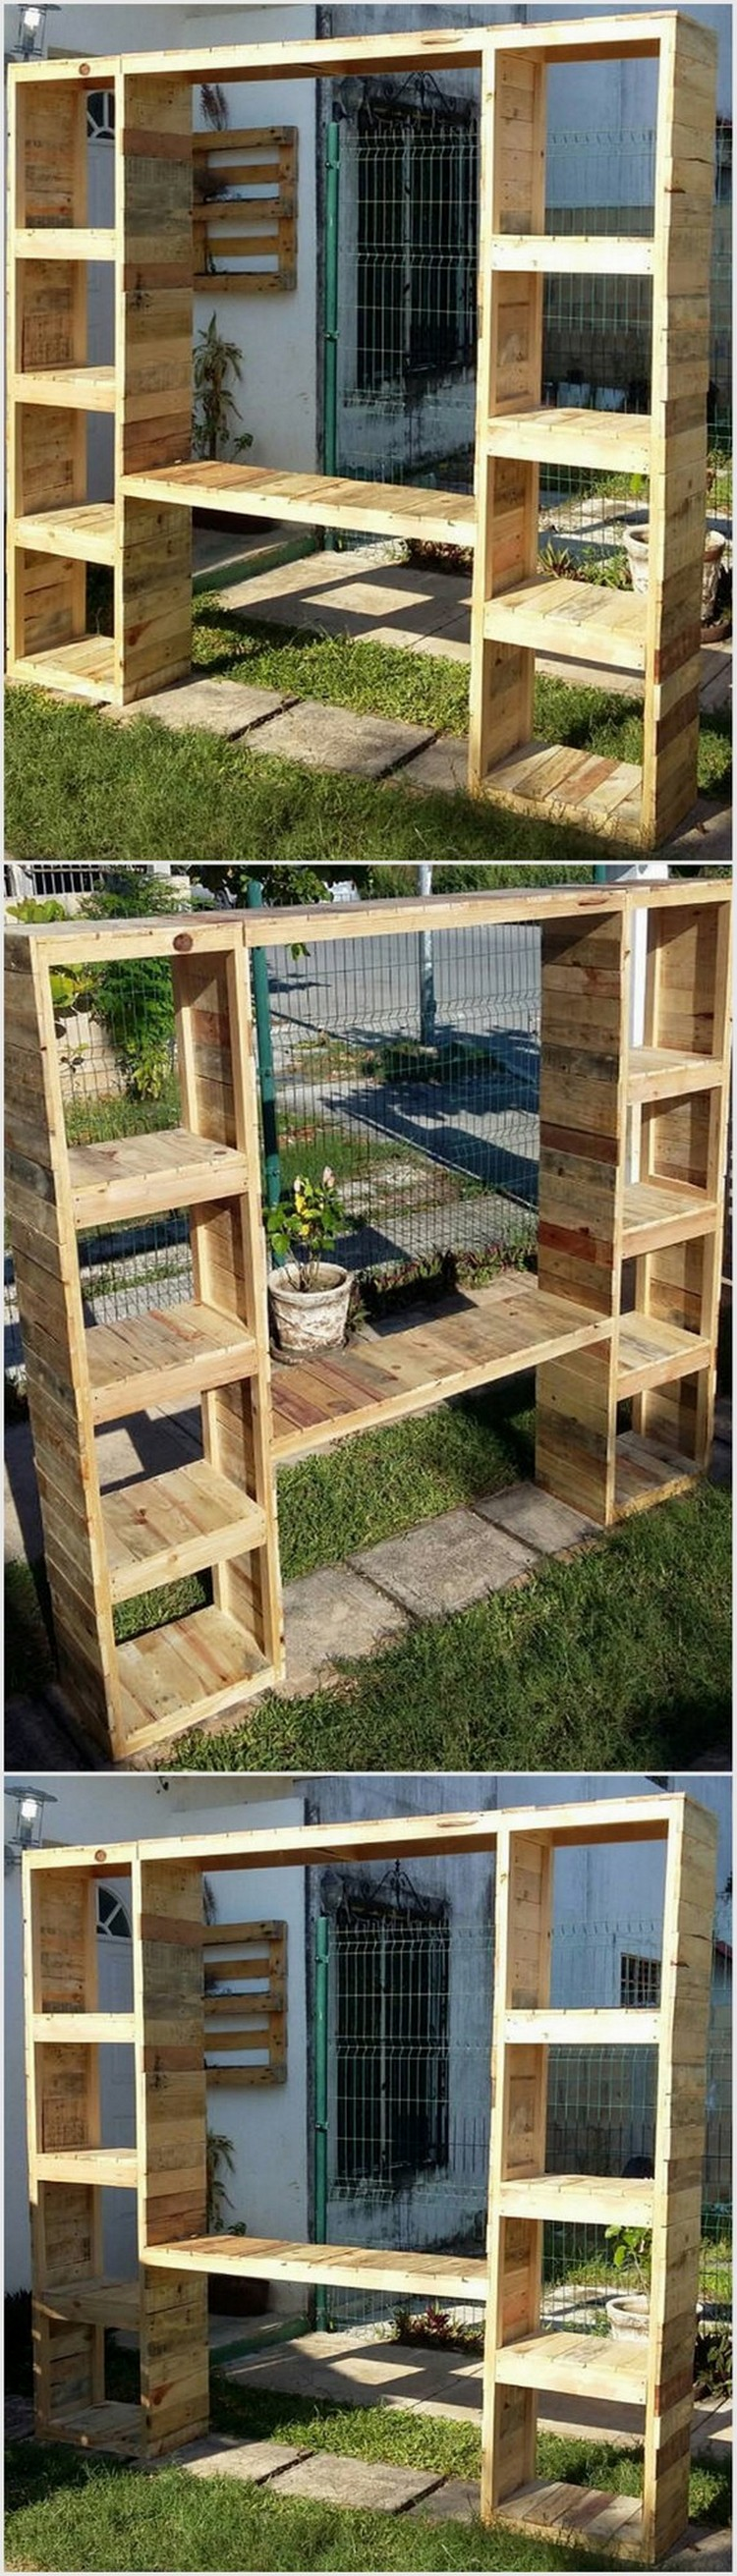 Affordable And Easy Wood Pallet Projects Pallet Wood Projects